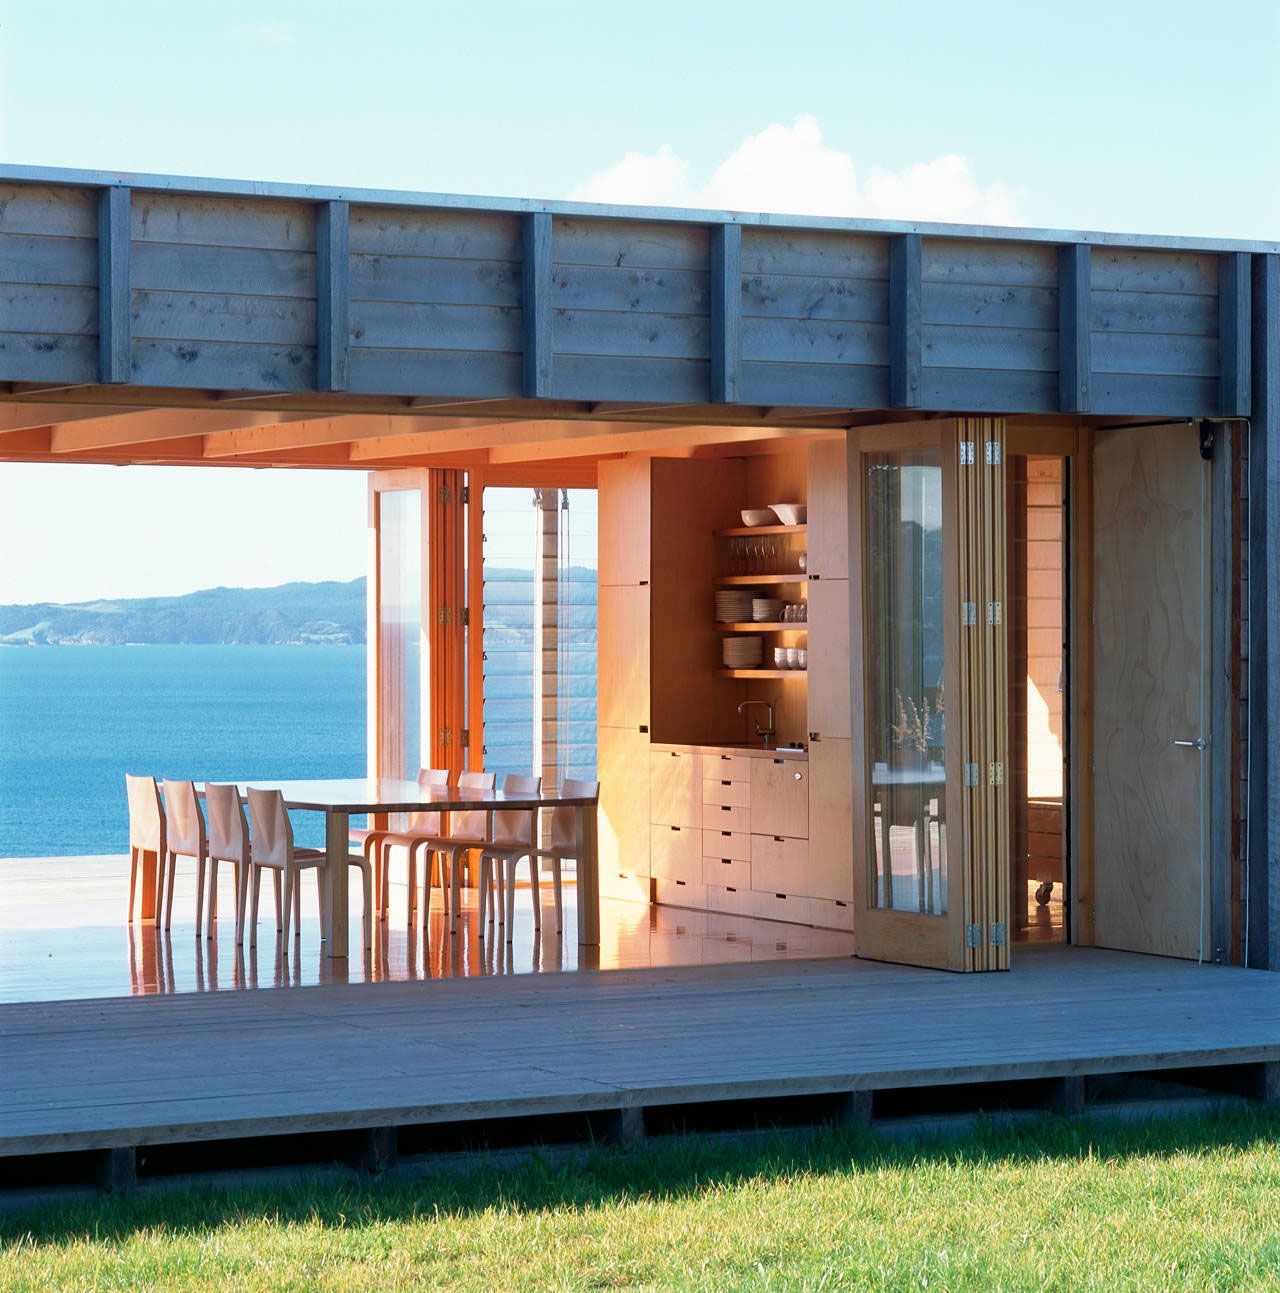 coromandel nz - opito bay #beach living | containers homes and